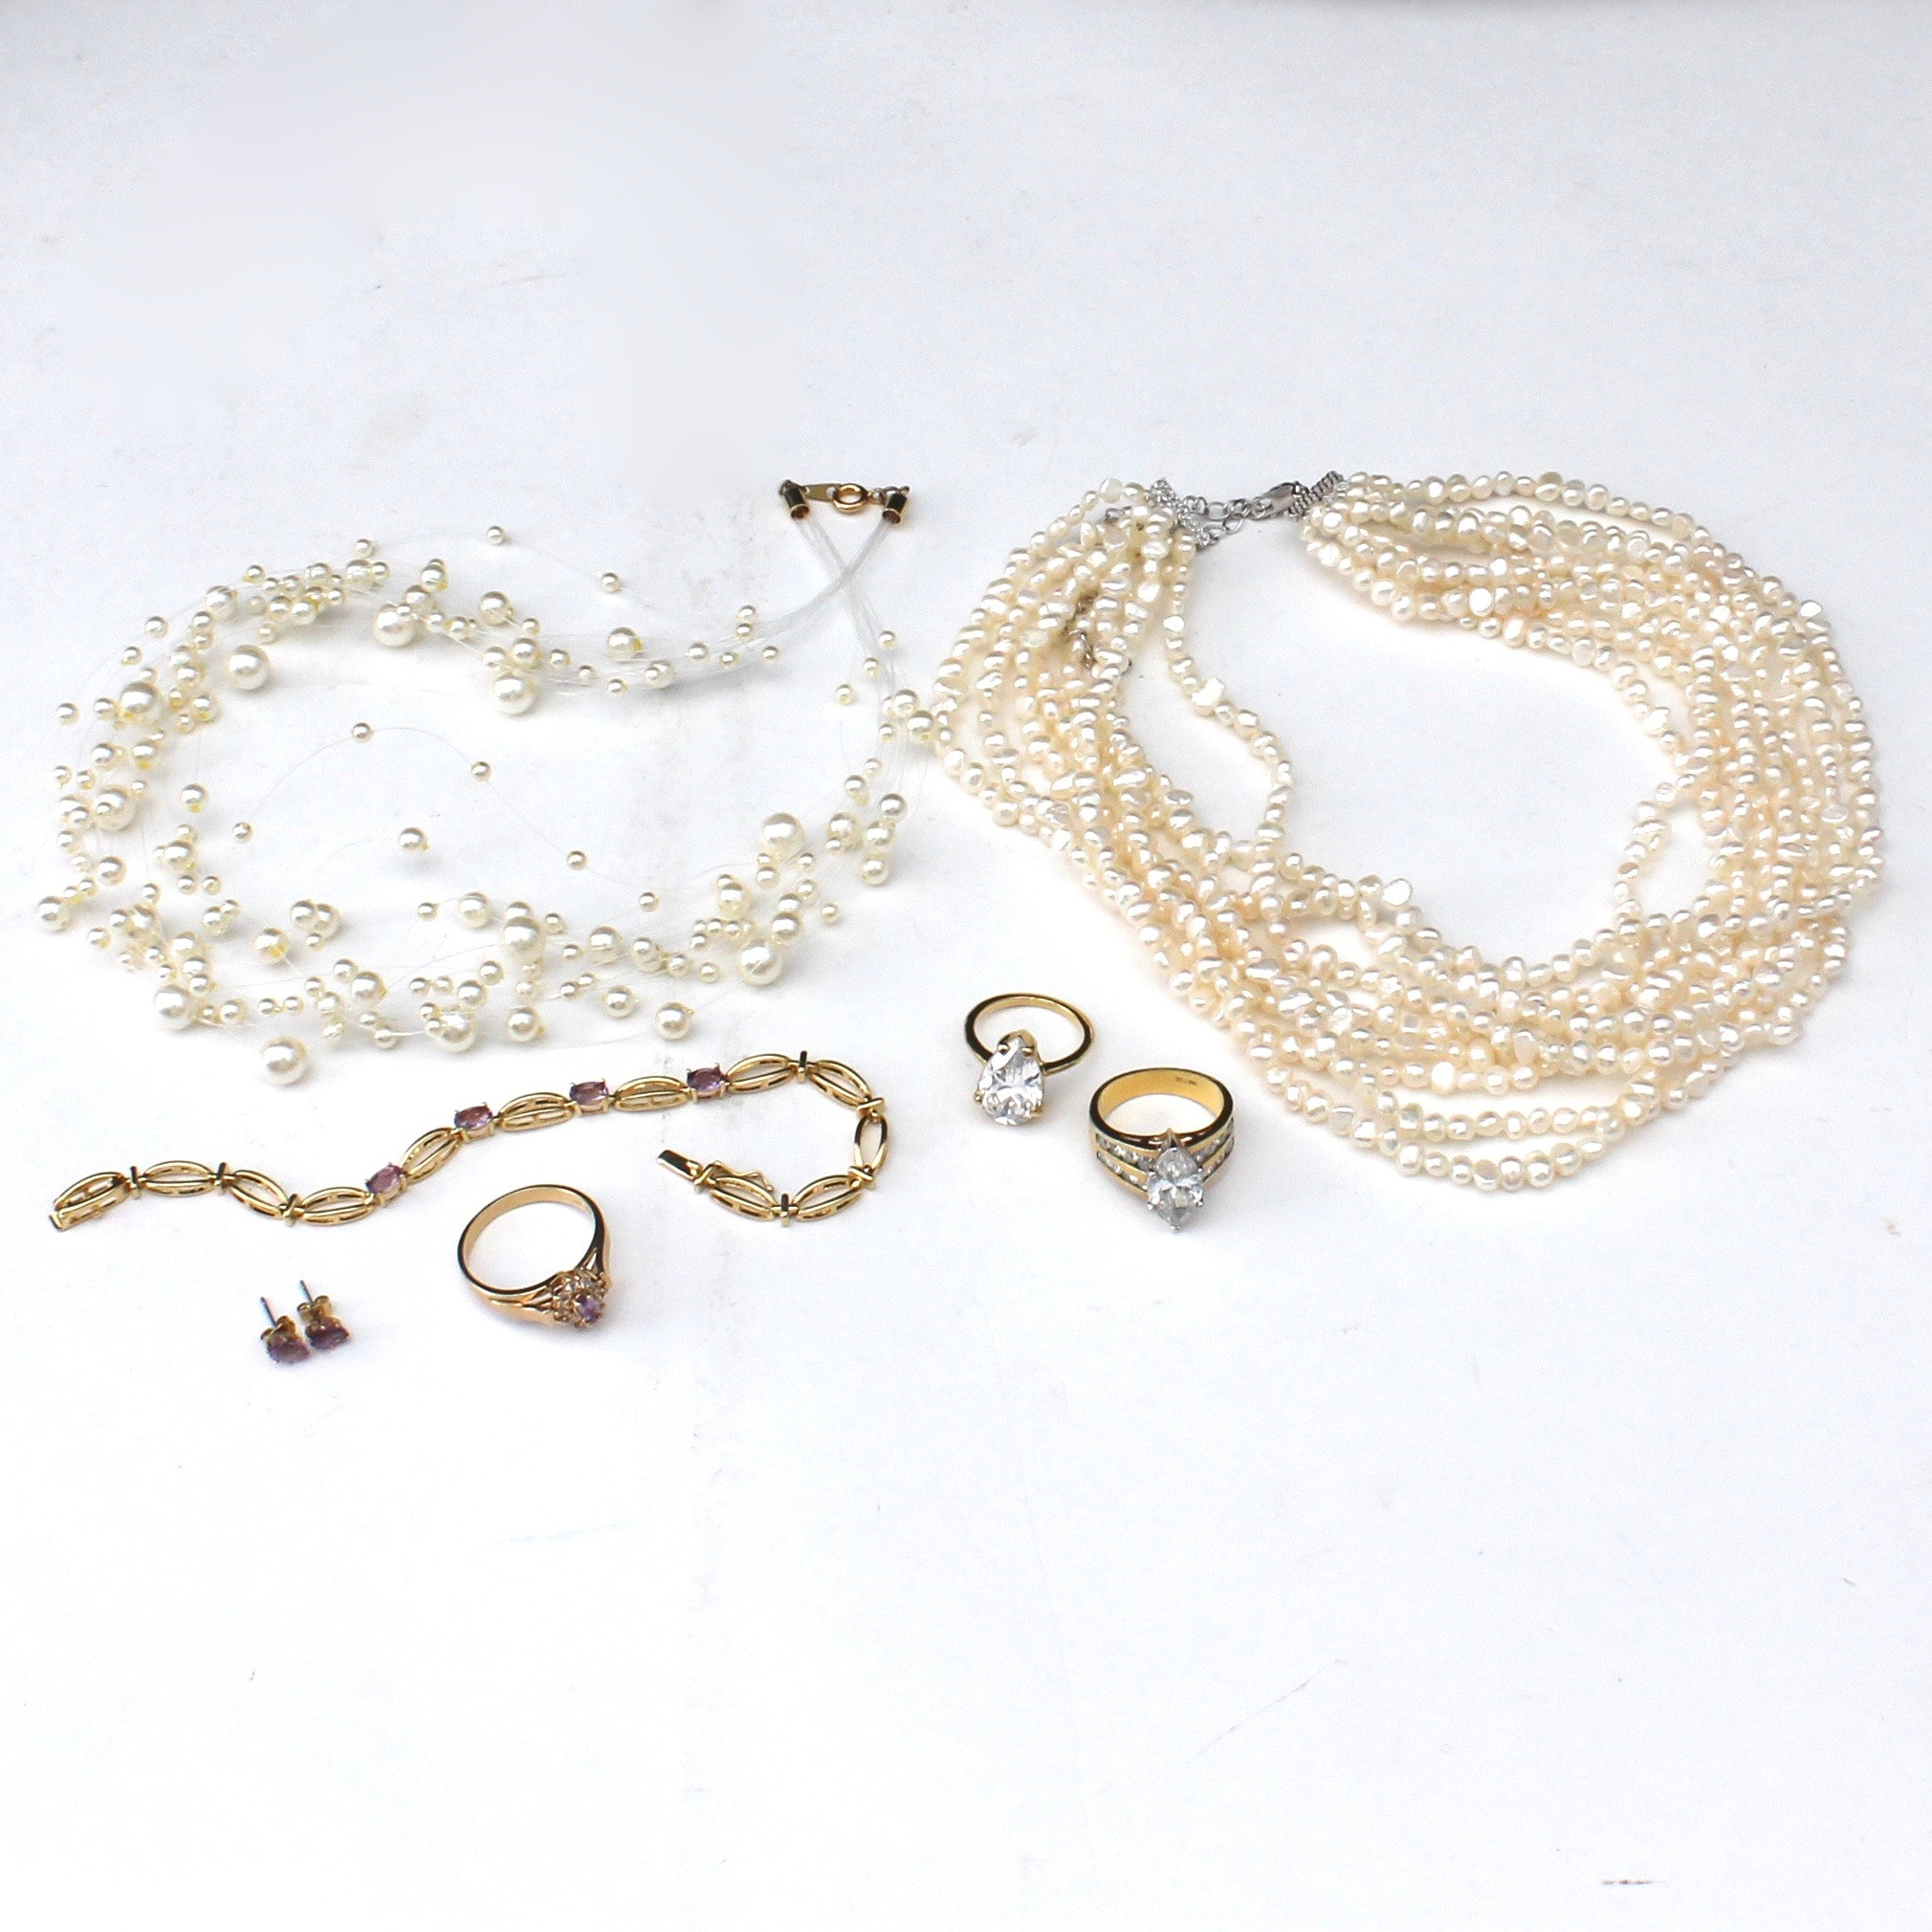 Multi-strand Pearl Necklaces, Statement Cocktail Rings, and Amethyst Jewelry Set